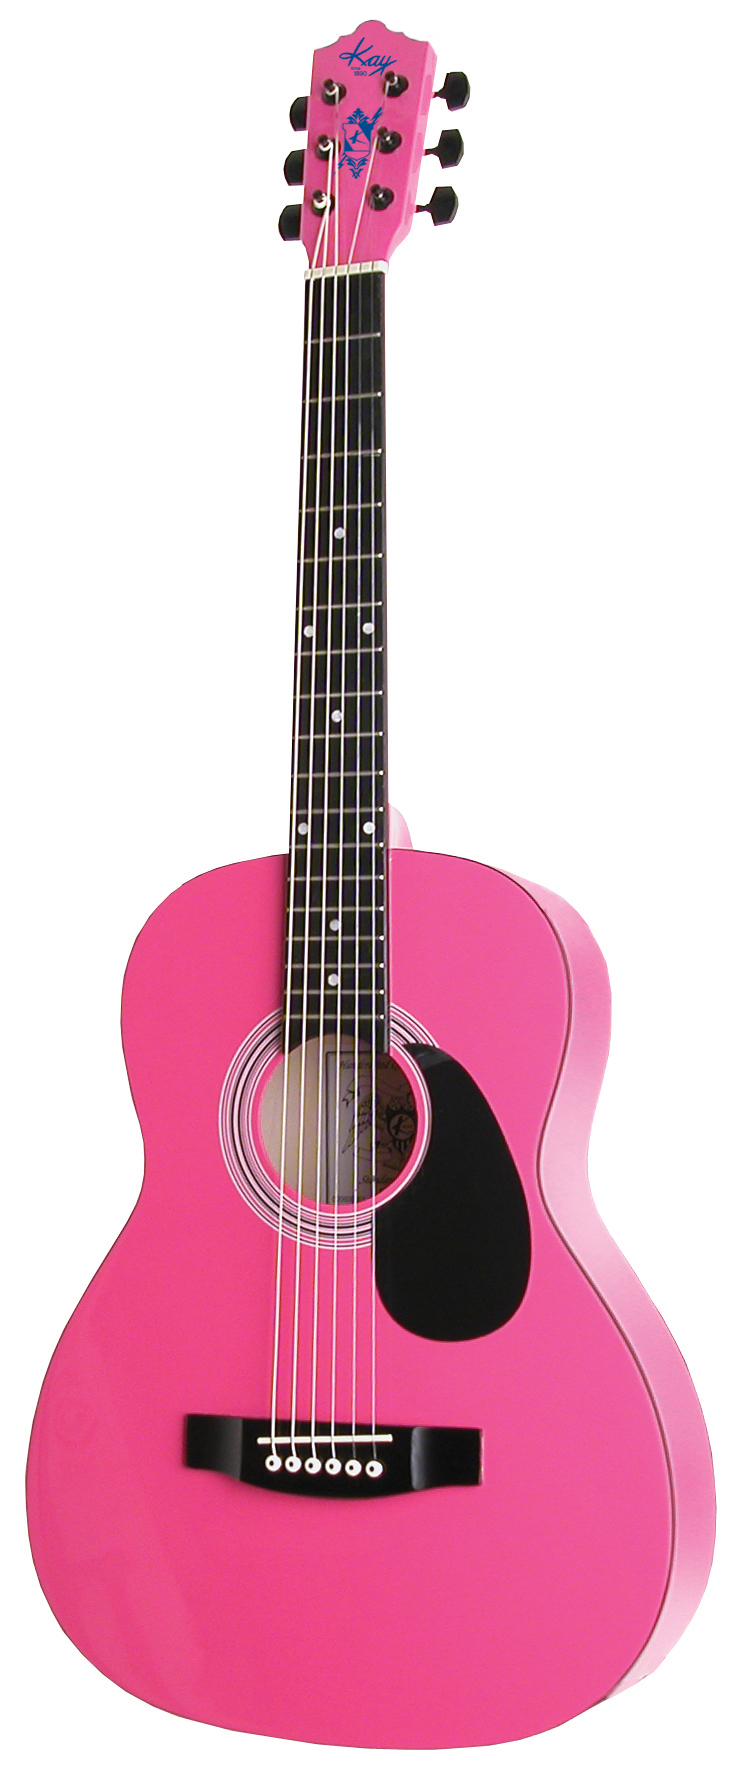 Guitar clipart string instrument. Kay musical instruments model